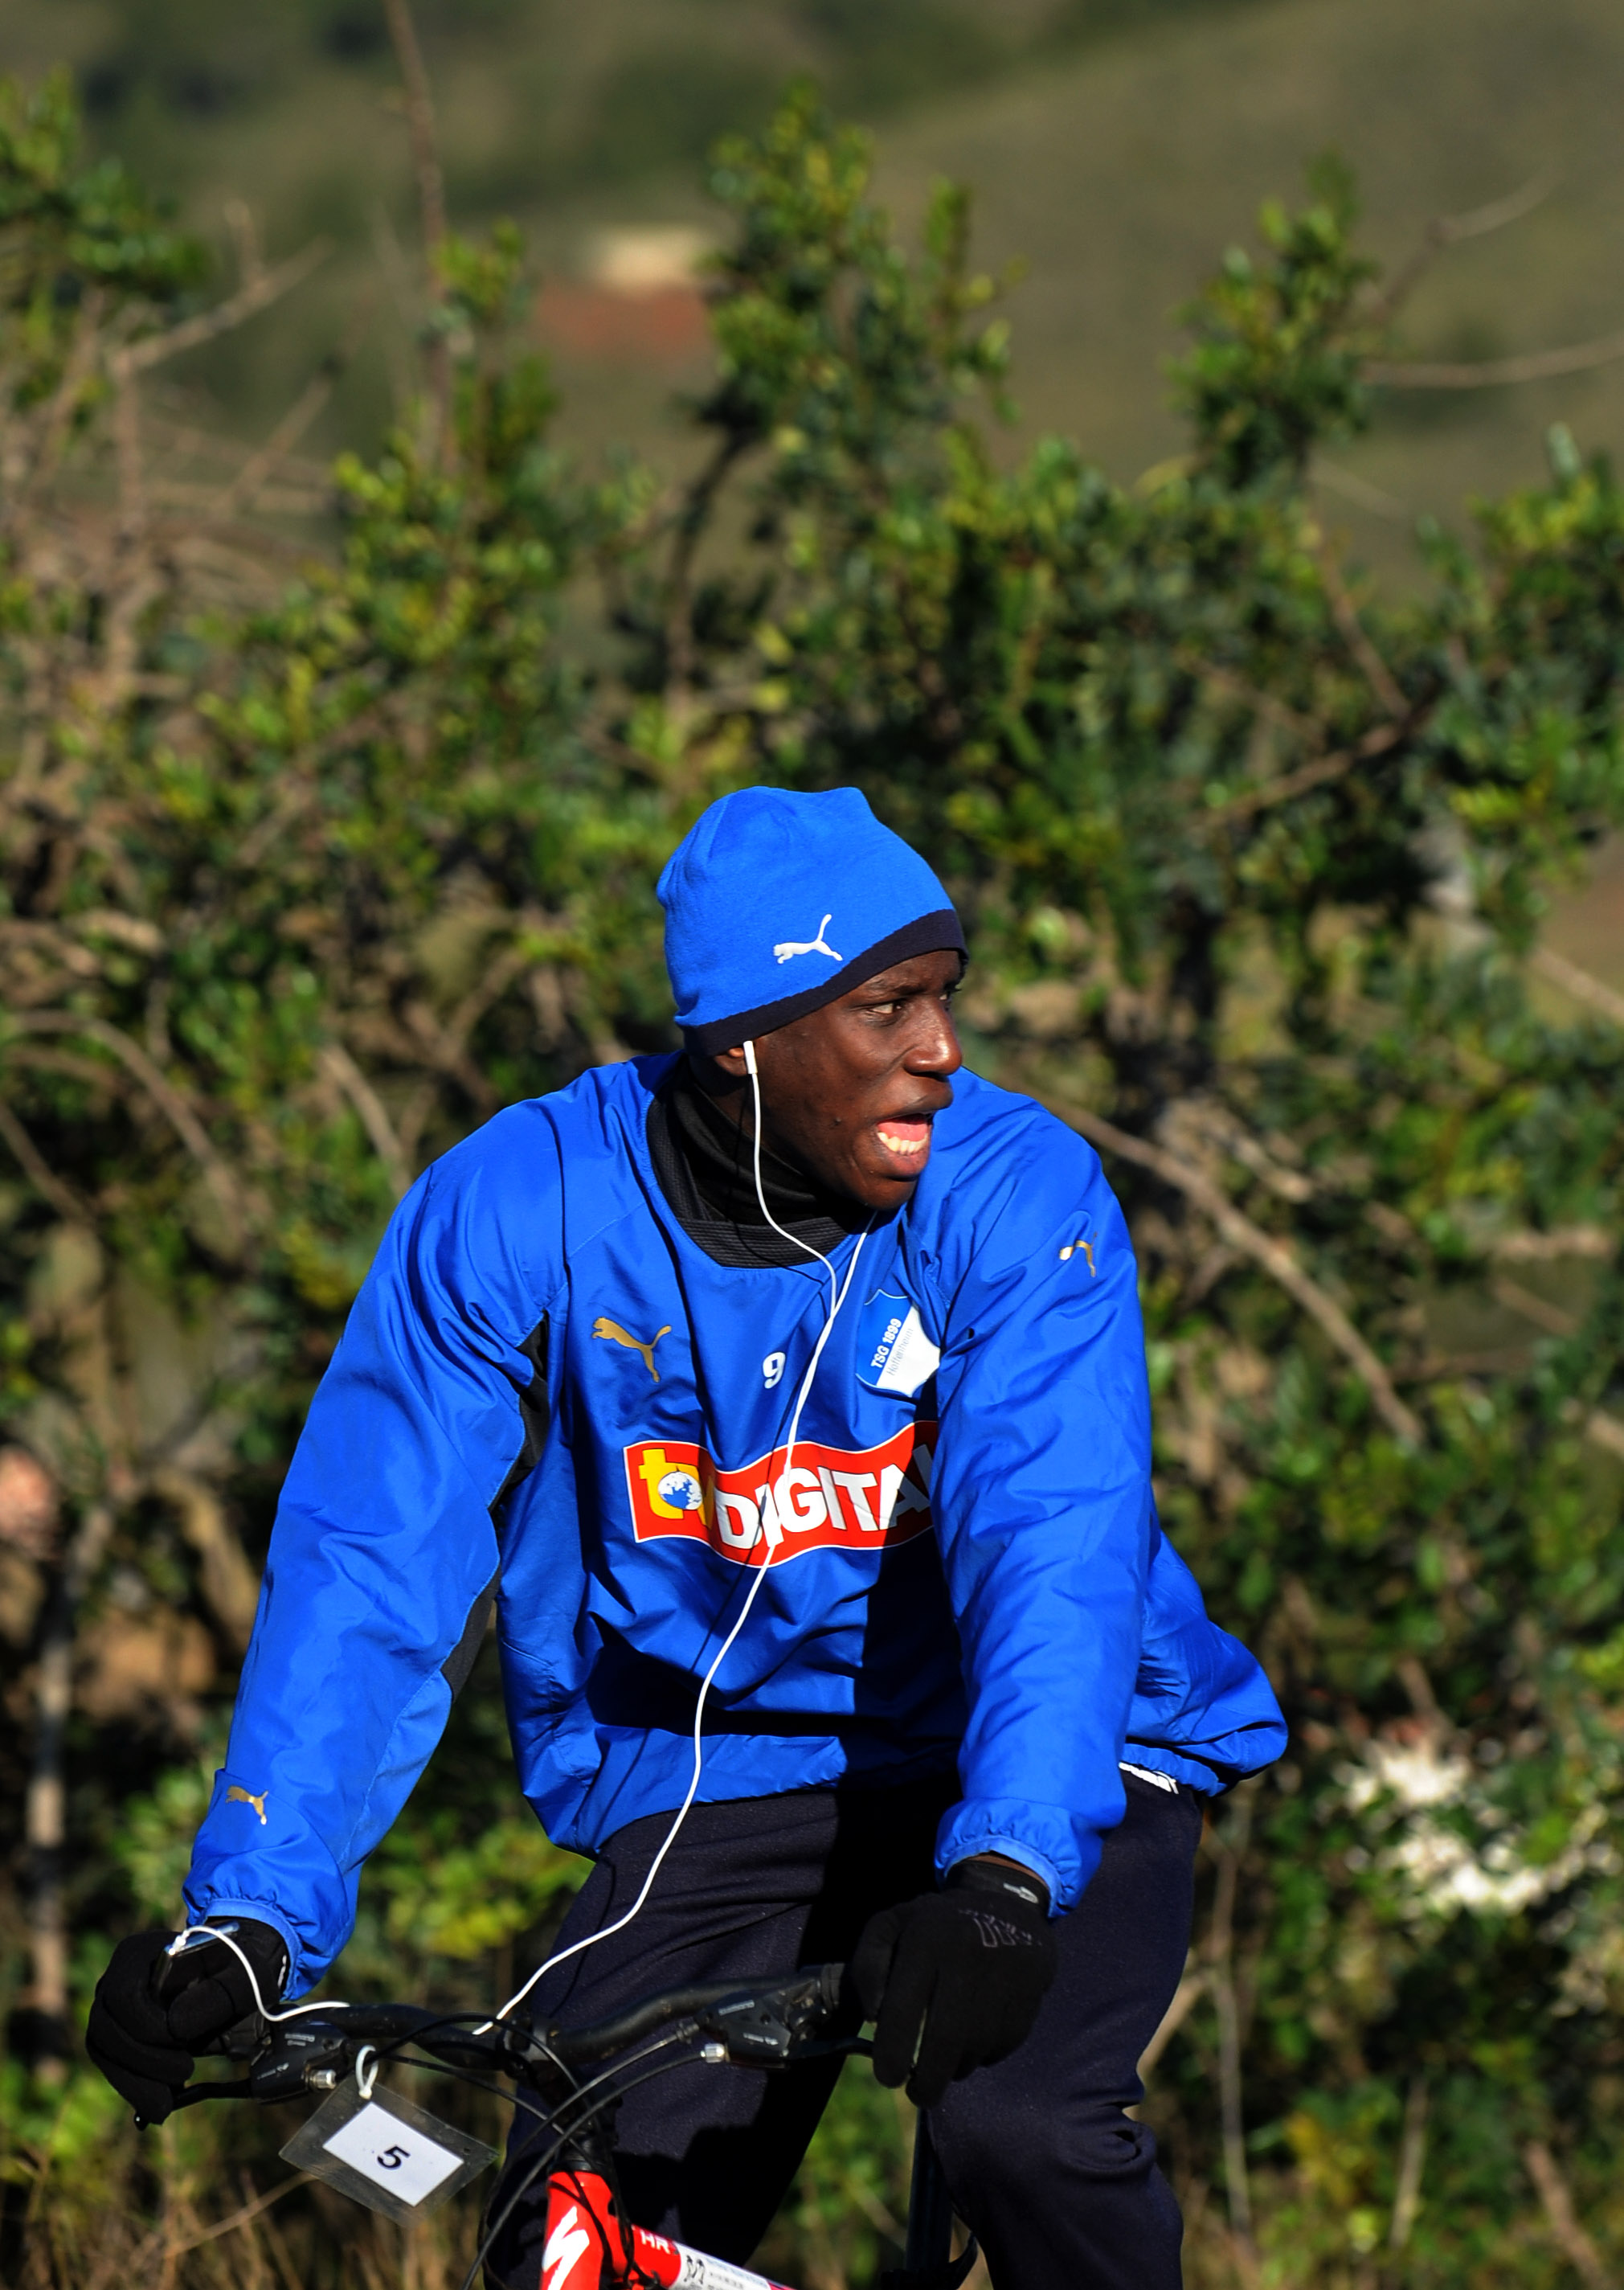 LA MANGA, SPAIN - JANUARY 12:  Demba Ba of 1899 Hoffenheim cycles during day four of his team's training camp on January 12, 2009 in La Manga, Spain.  (Photo by Jasper Juinen/Getty Images)